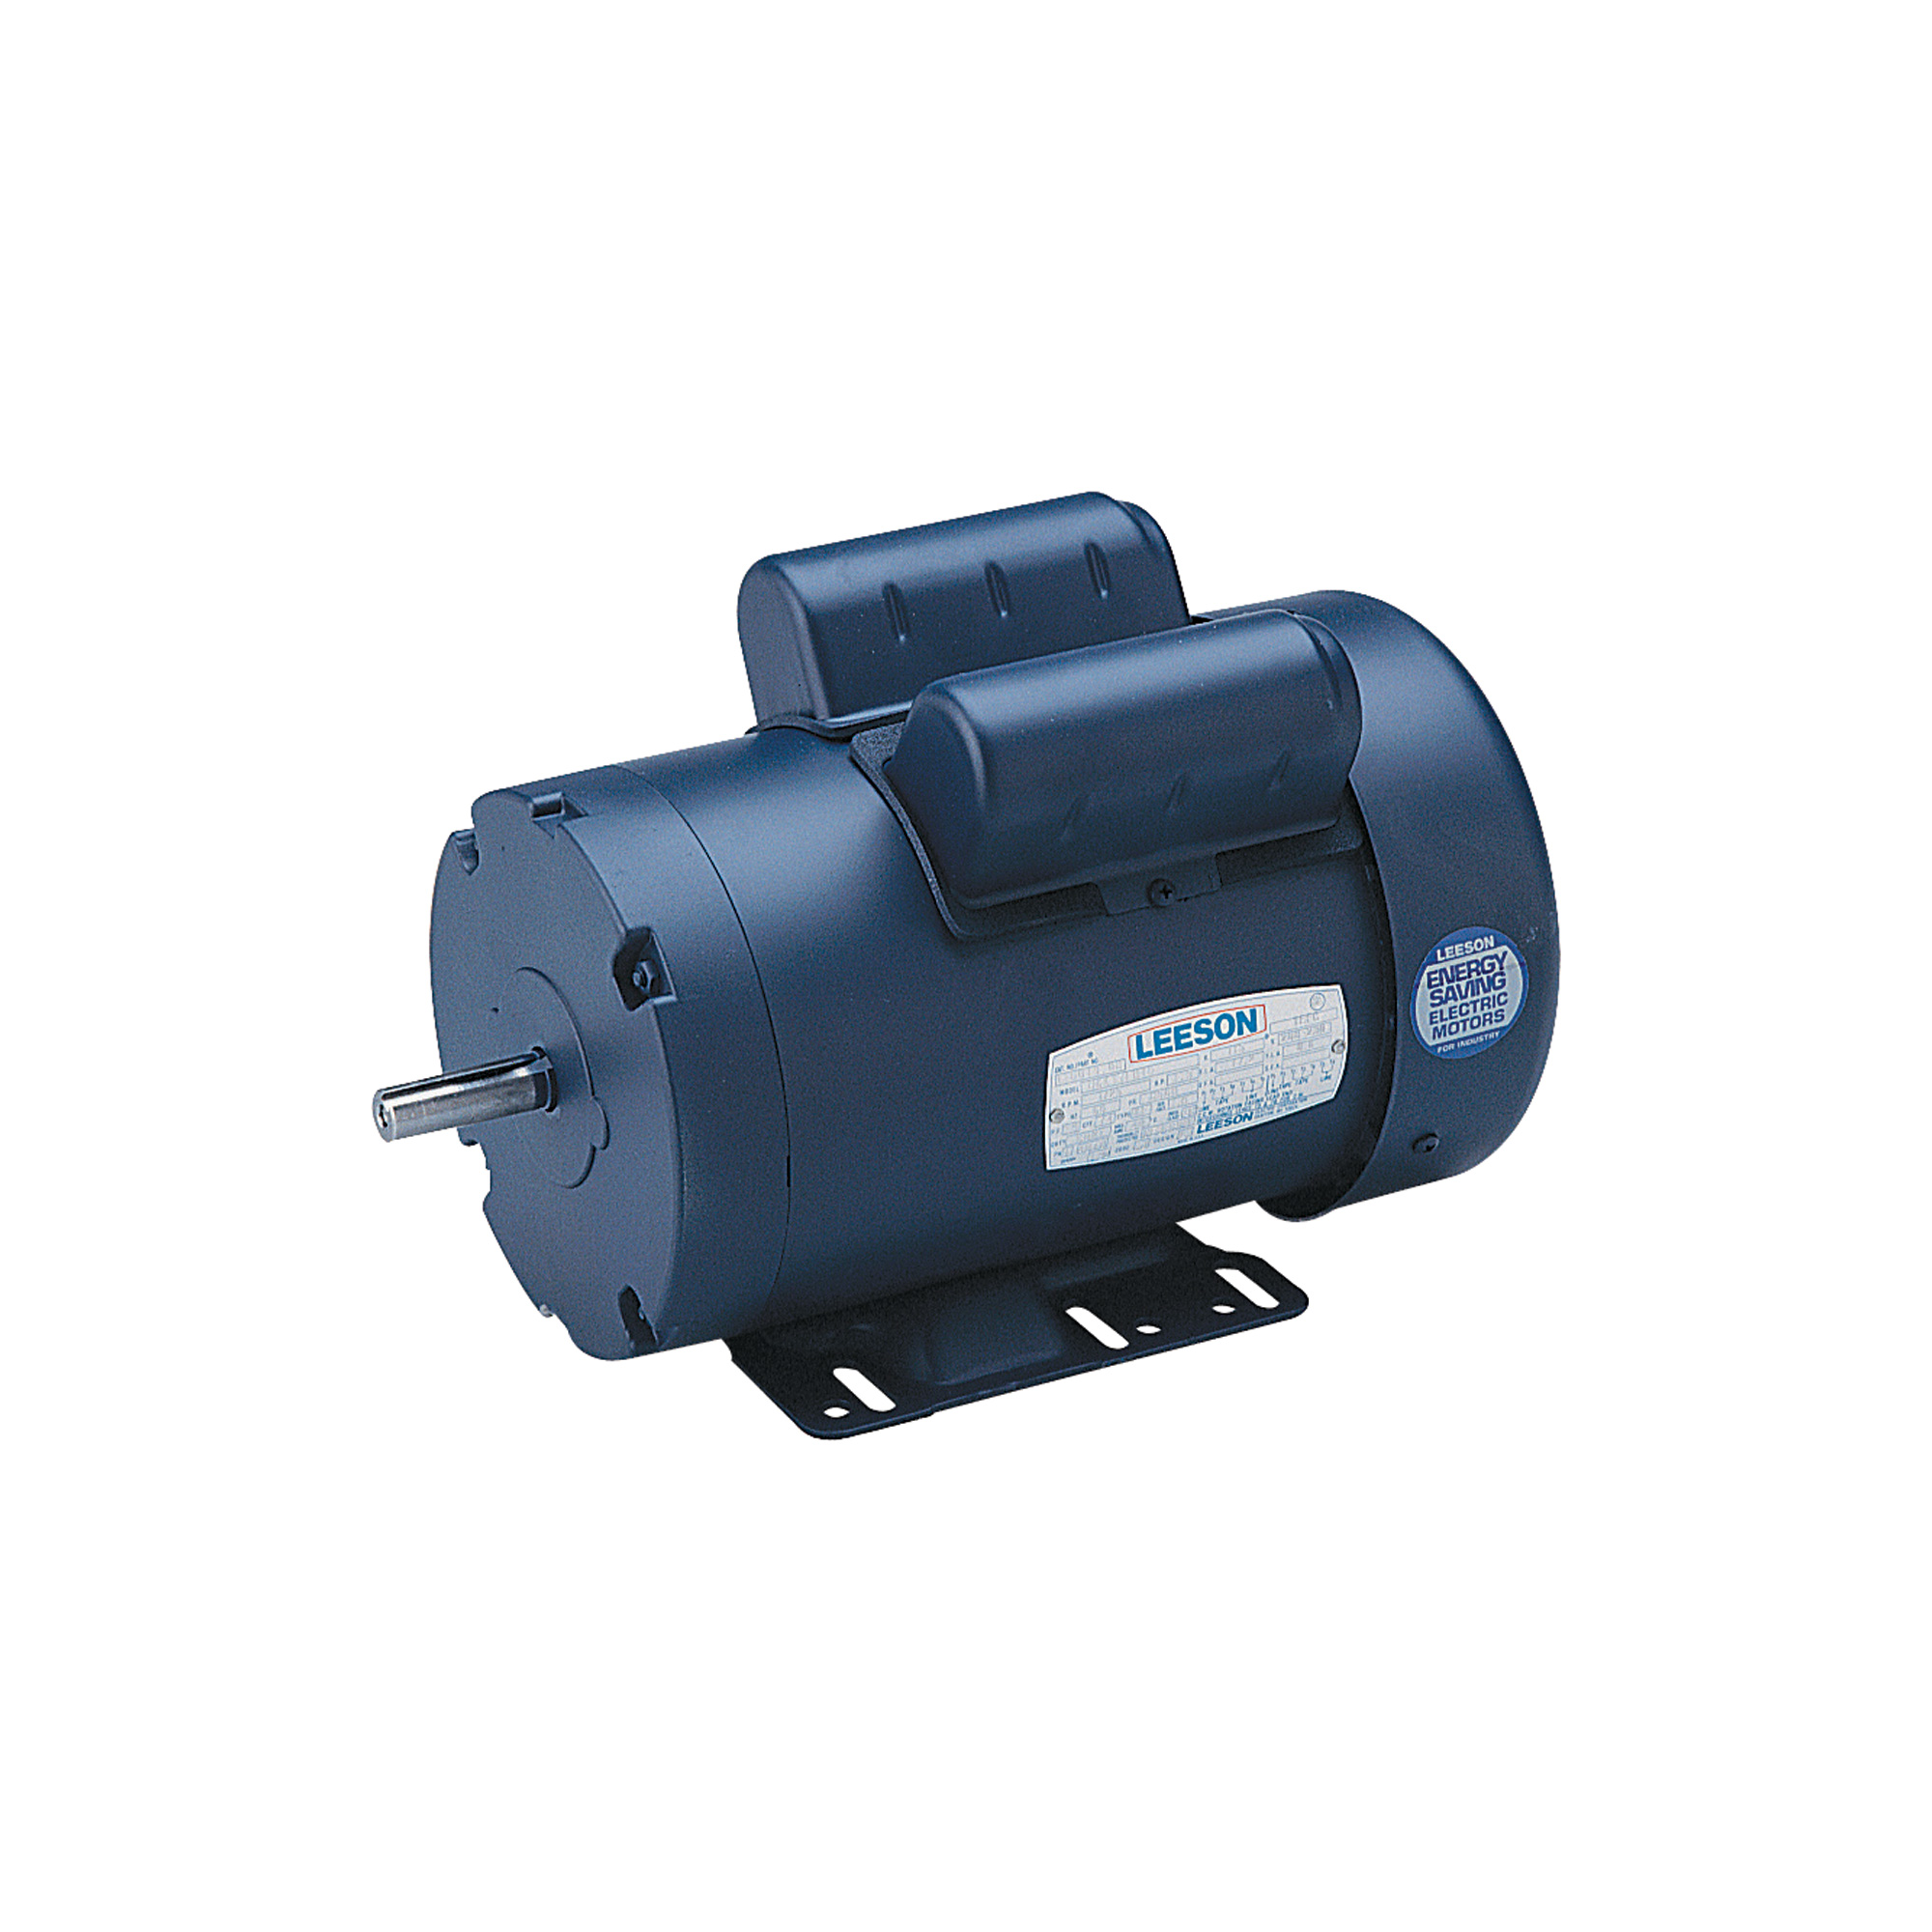 3 Horsepower Electric Motor Modern Design Of Wiring Diagram 208 230 Phase Leeson General Purpose 2 Hp 1 800 Rpm 115 Rh Northerntool Com To Watts Single